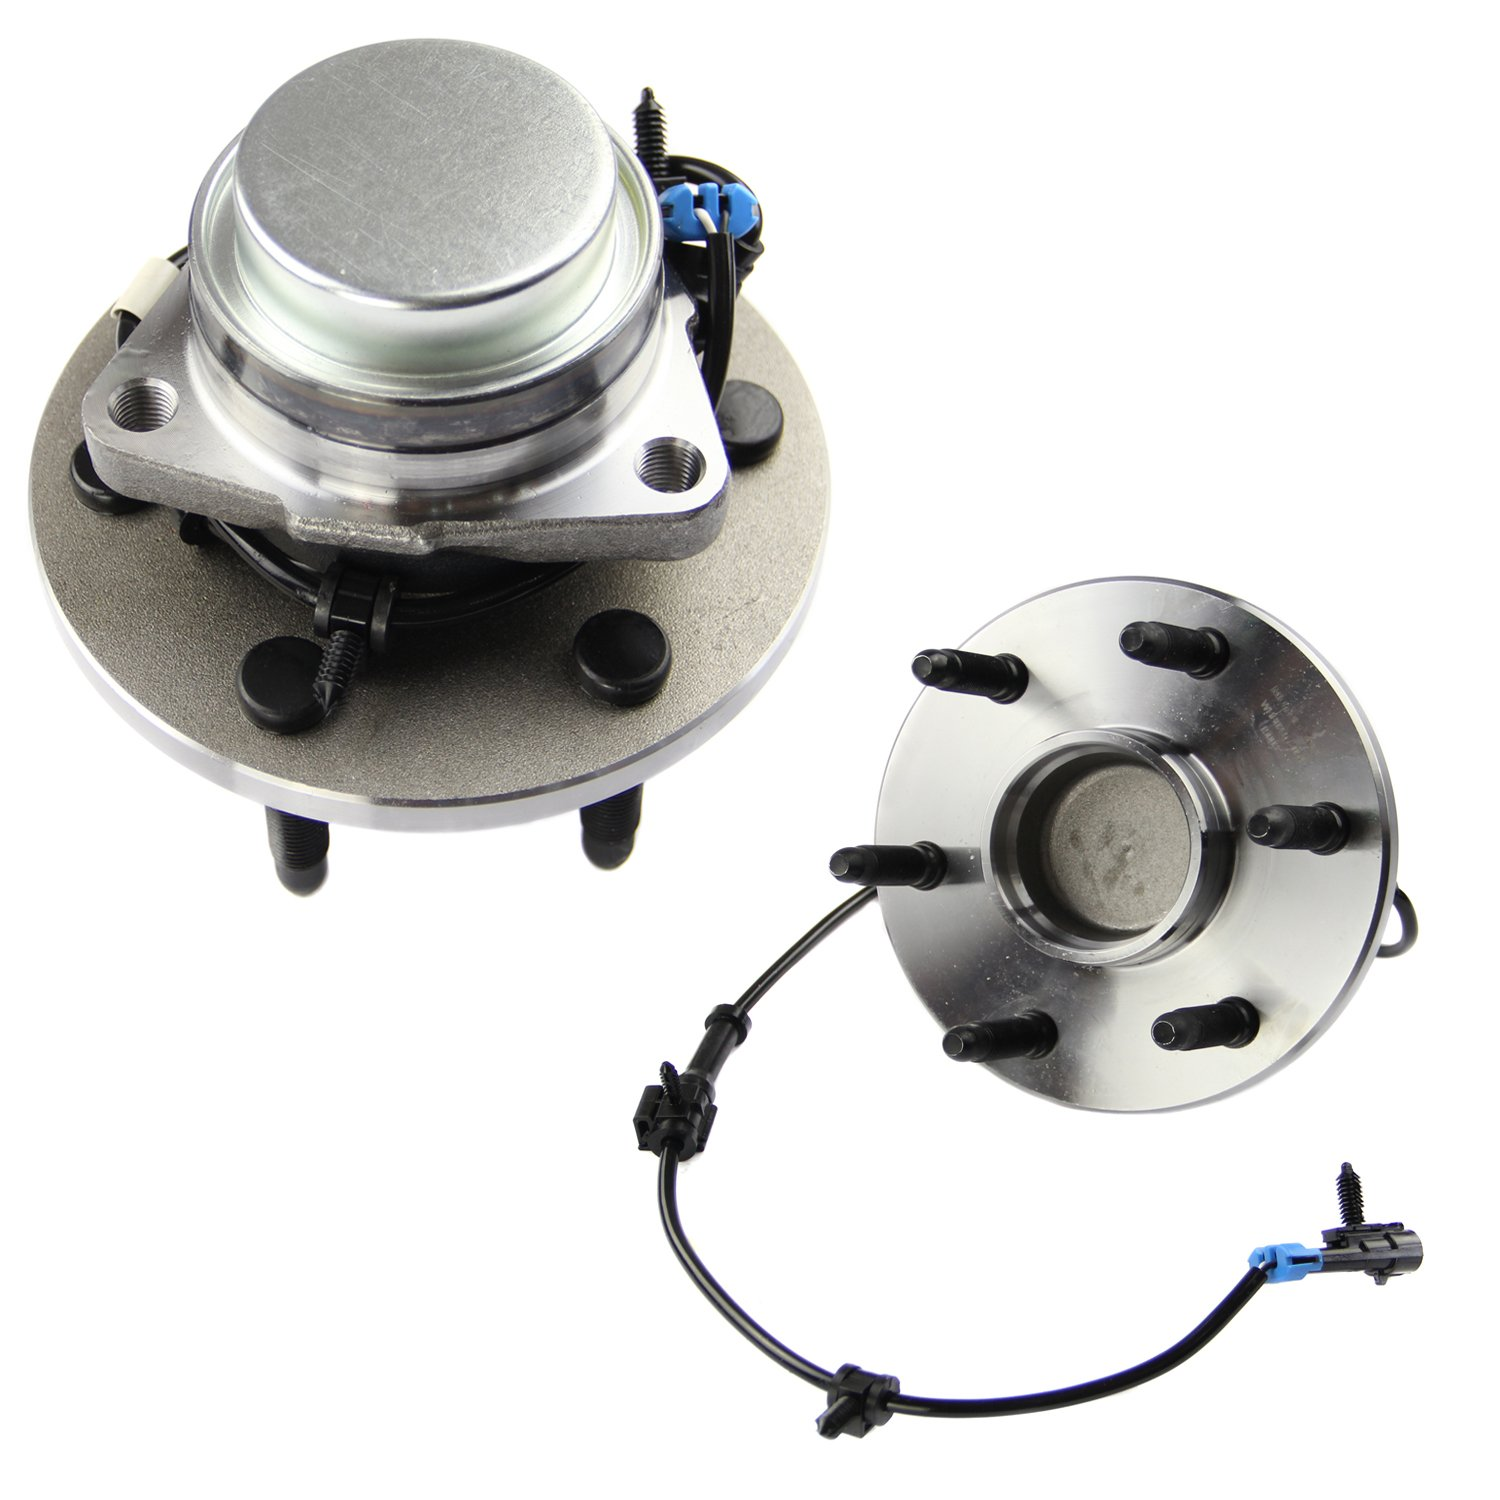 MOTORMAN 515054 Front ABS Wheel Hub and Bearing Set - Both Left and Right - Pair of 2